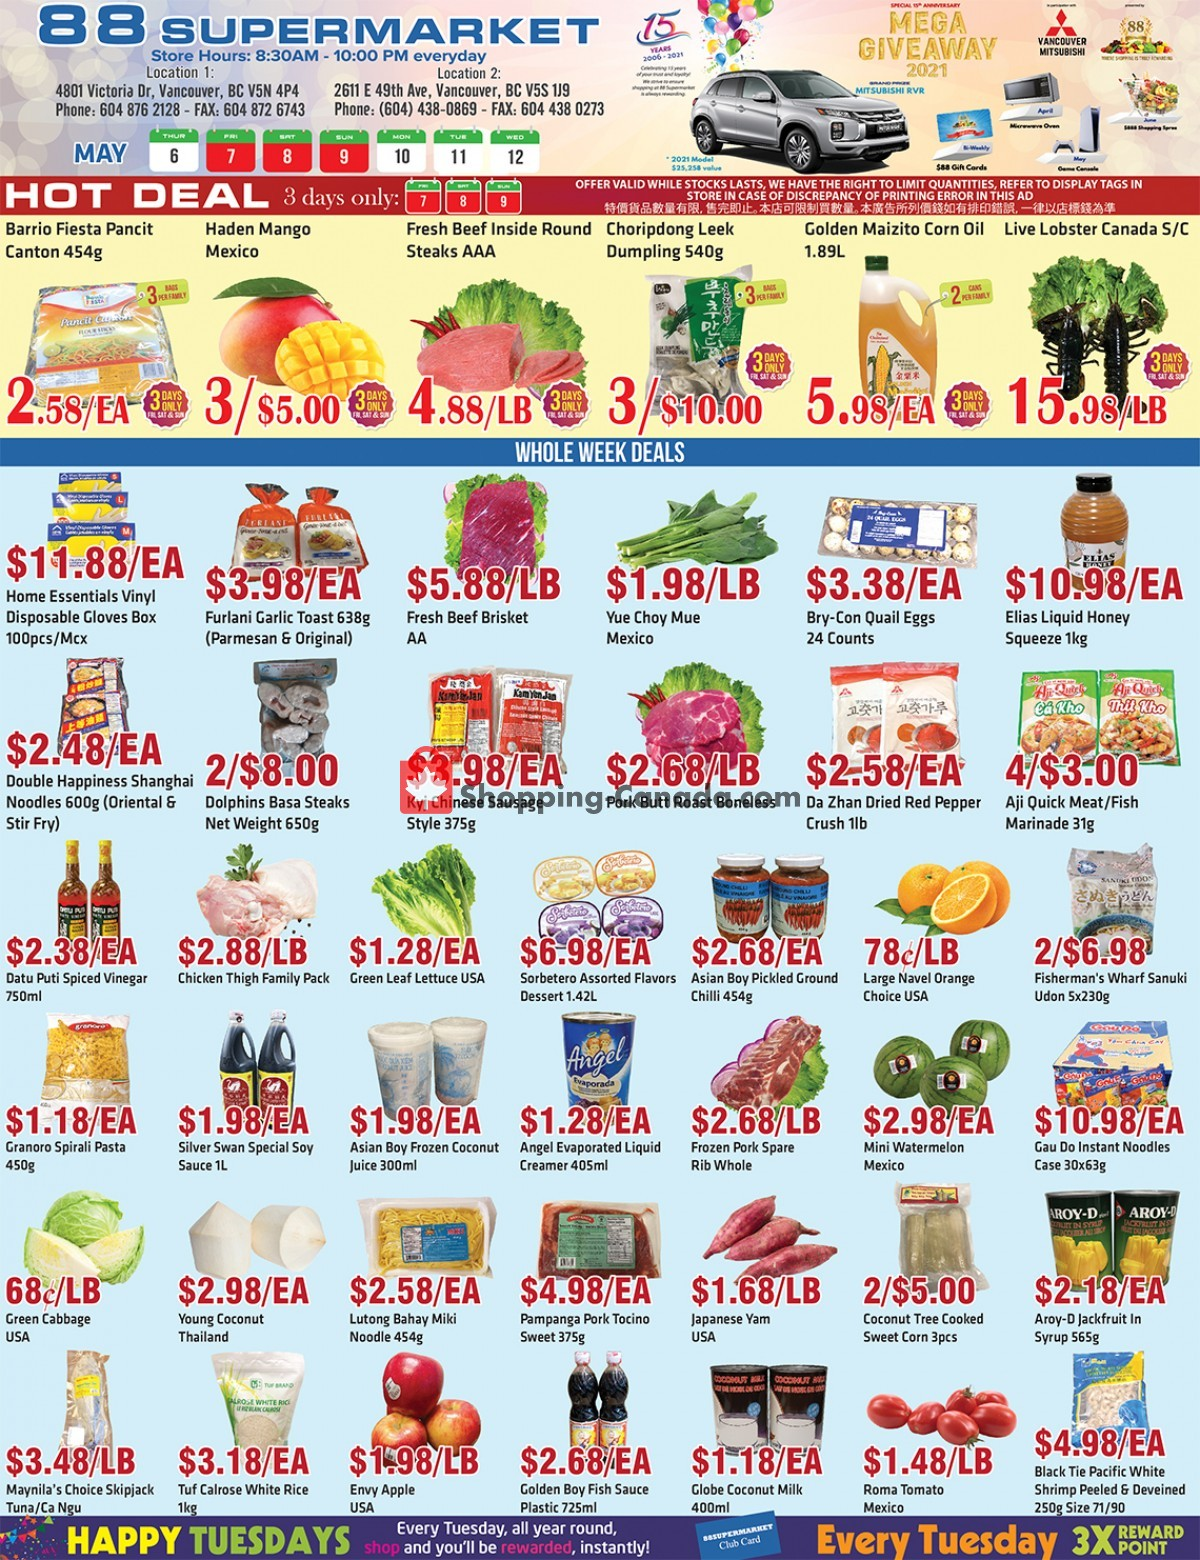 Flyer 88 Supermarket Canada - from Thursday May 6, 2021 to Wednesday May 12, 2021